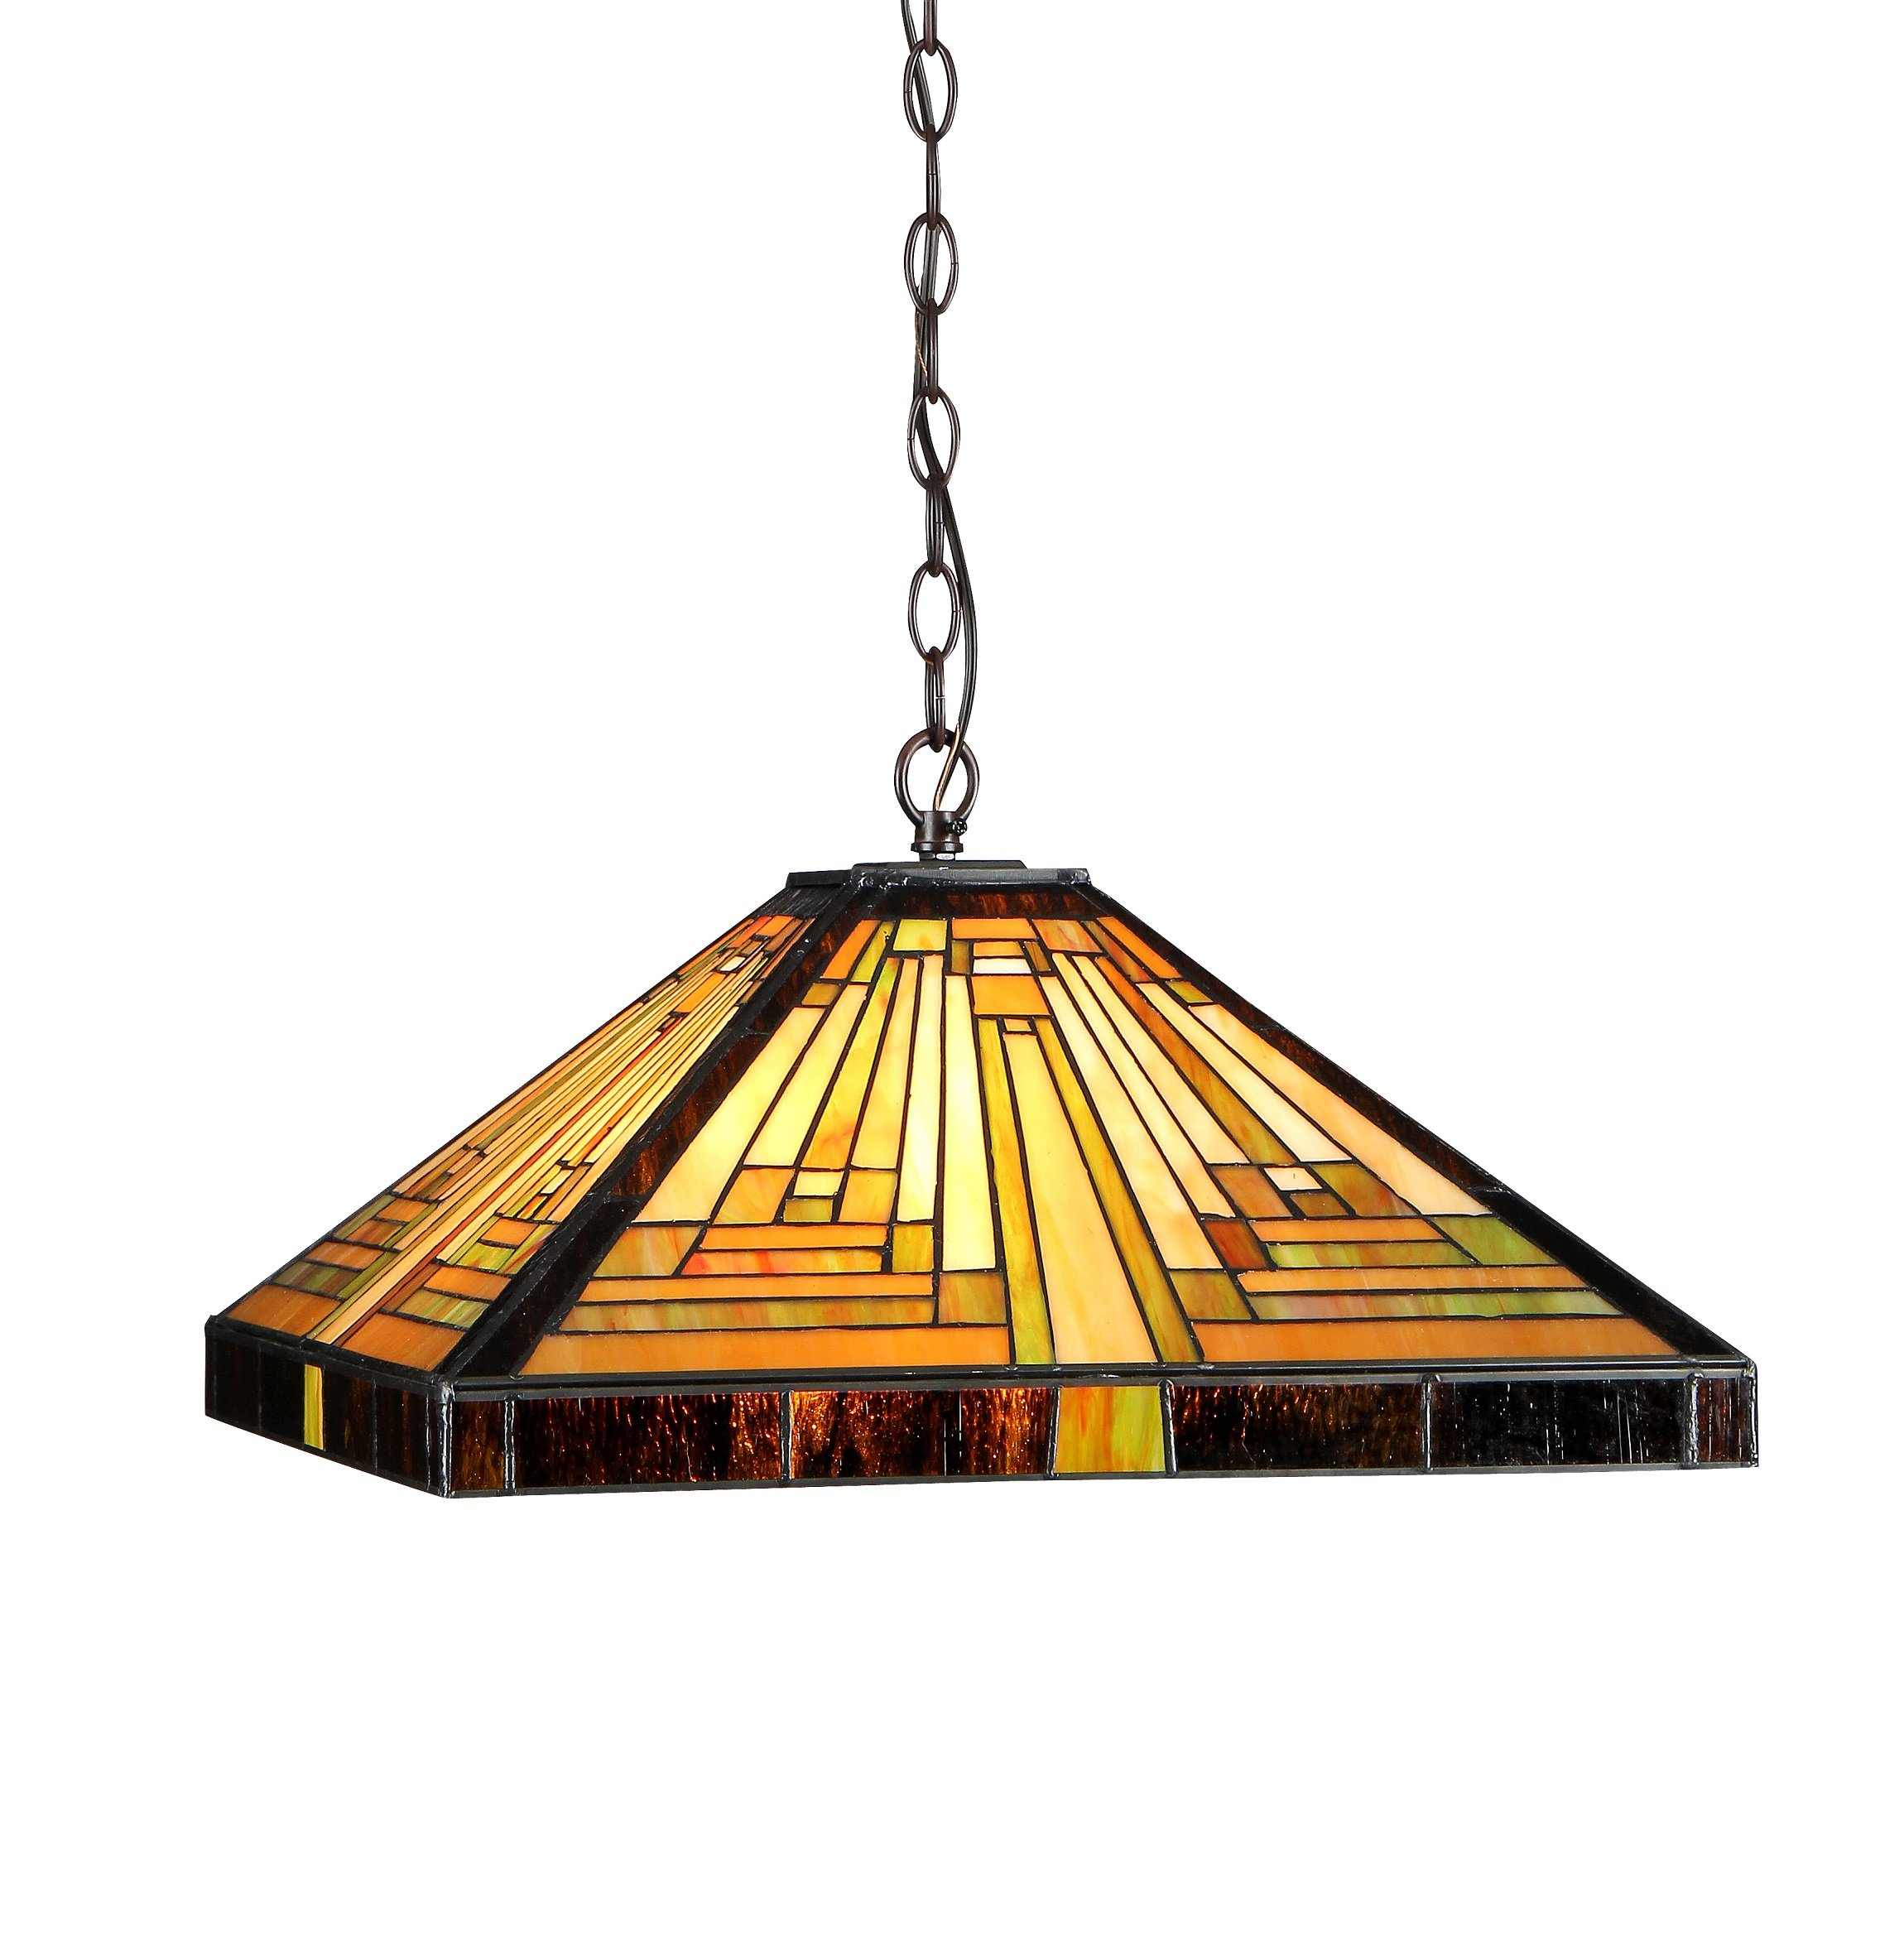 Chloe Lighting CH33359MR16-DH2 Innes Tiffany-Style Mission 2-Light Ceiling Pendant Fixture with 16-Inch Shade